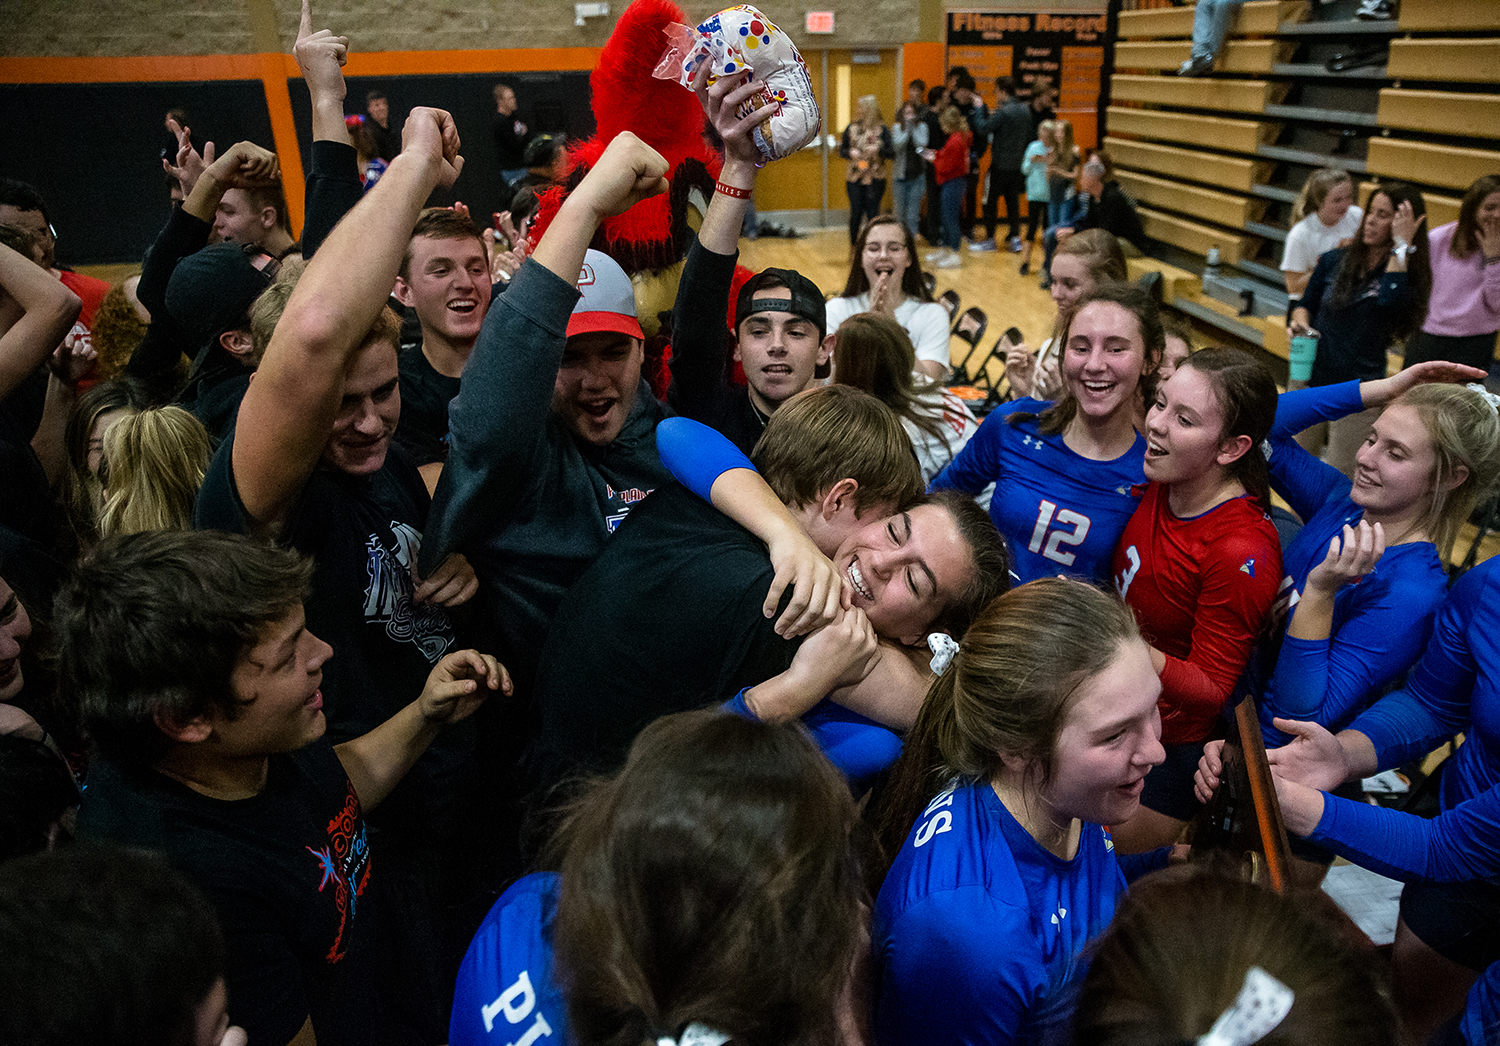 Pleasant Plains' Emma Grieser (5) is hugged by a member of the student section as they rush the floor to celebrate the Cardinals defeating Eureka in the Class 2A Beardstown Supersectional at Beardstown High School, Friday, Nov. 2, 2018, in Beardstown, Ill. [Justin L. Fowler/The State Journal-Register]